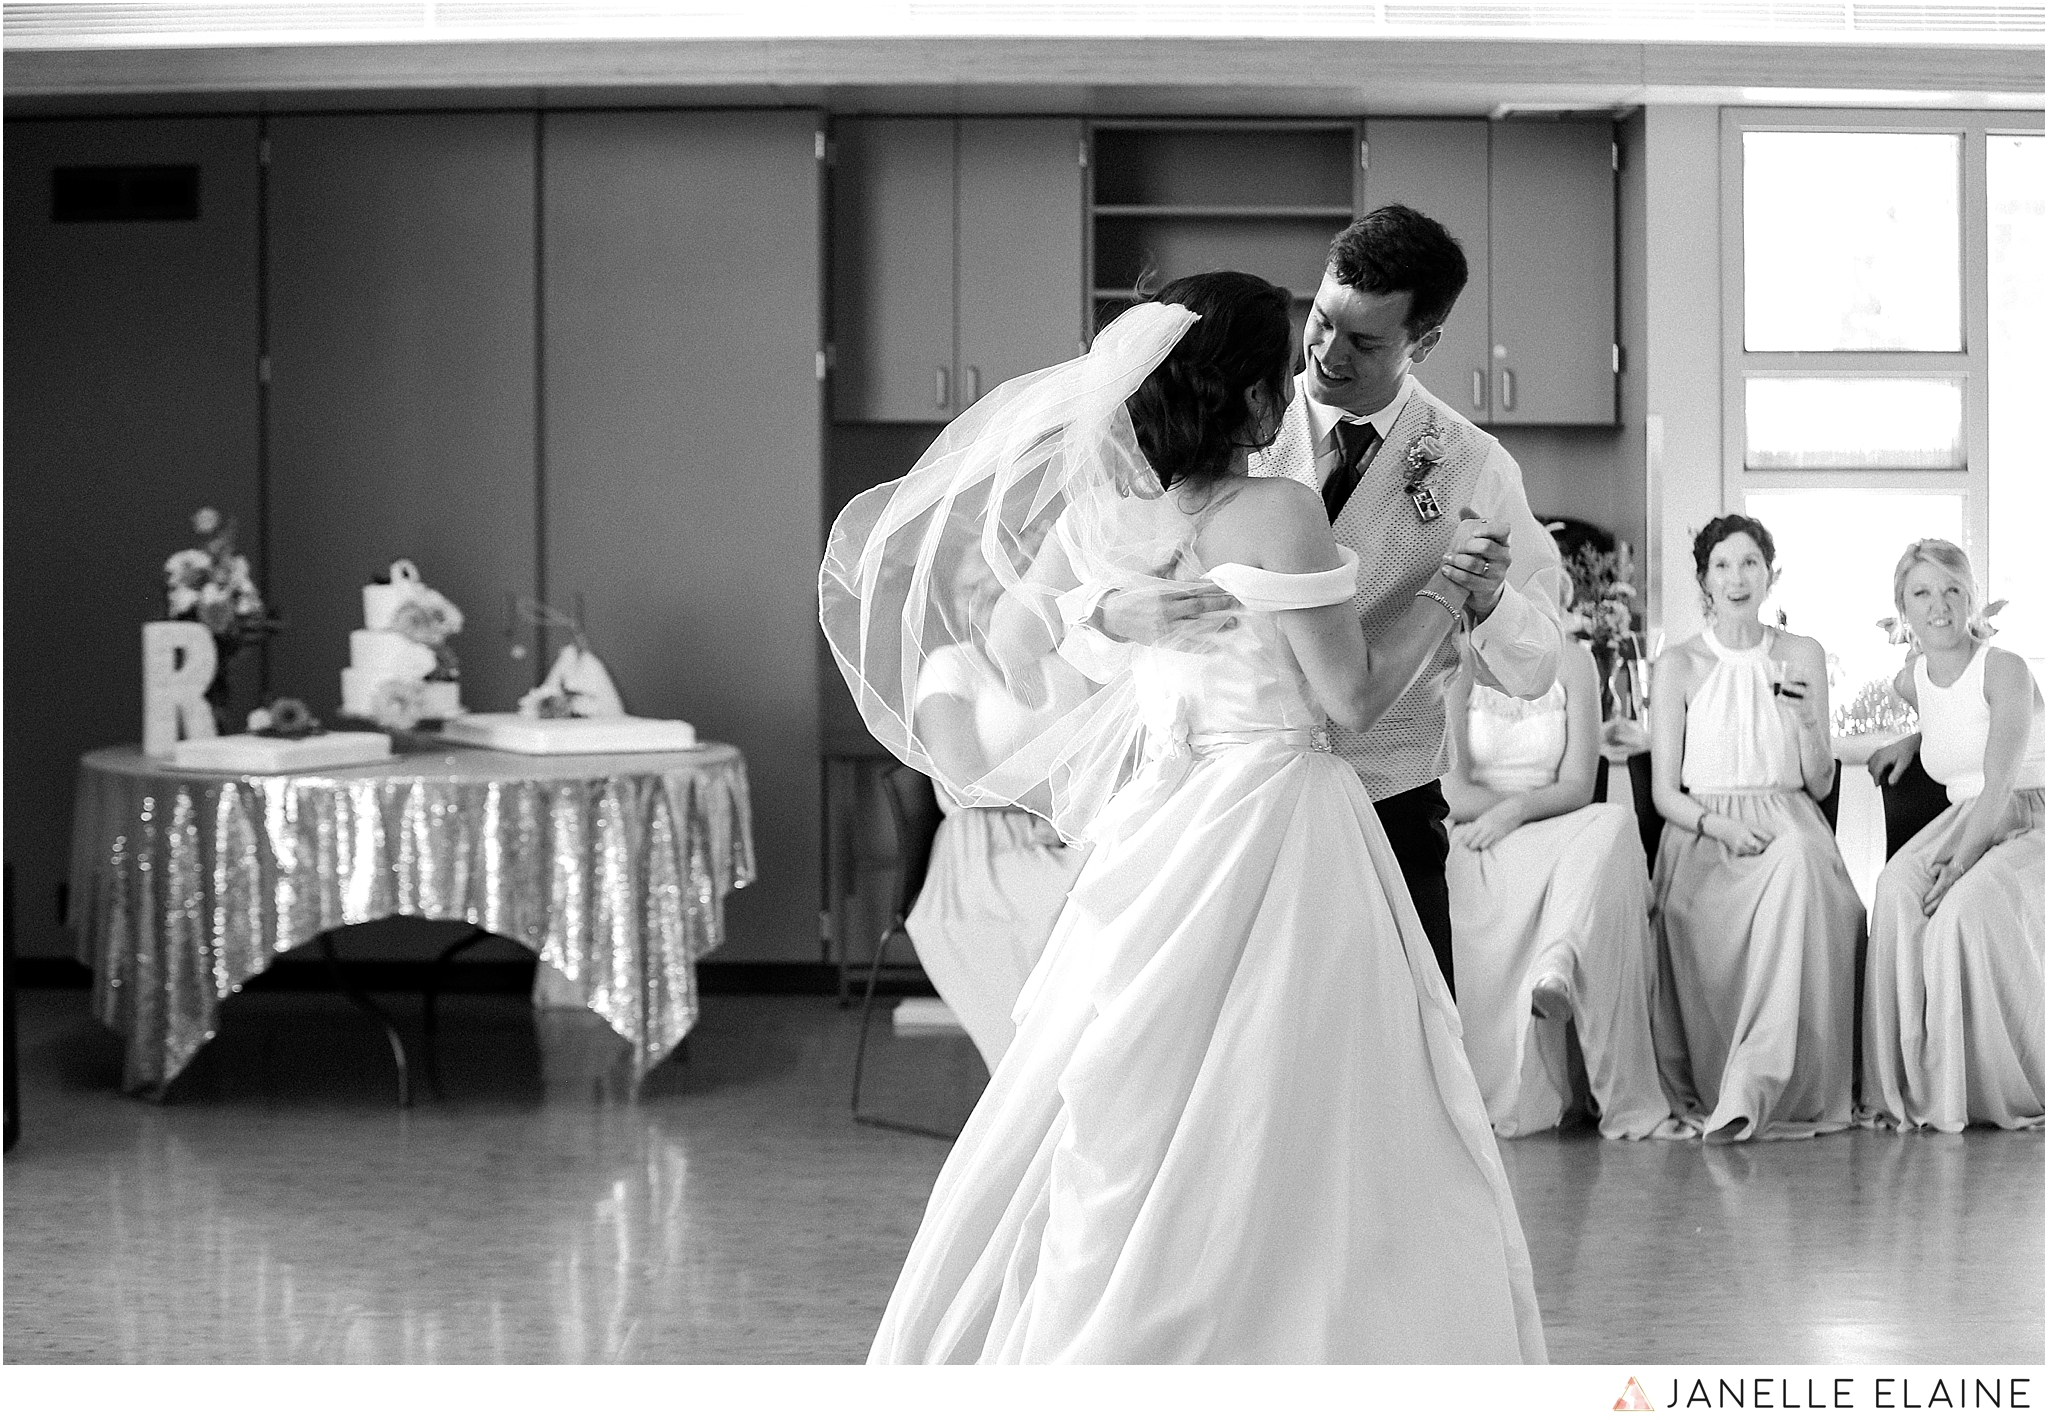 janelle elaine photography-jimmynicole-luther burbank park-seattle-wedding-196.jpg